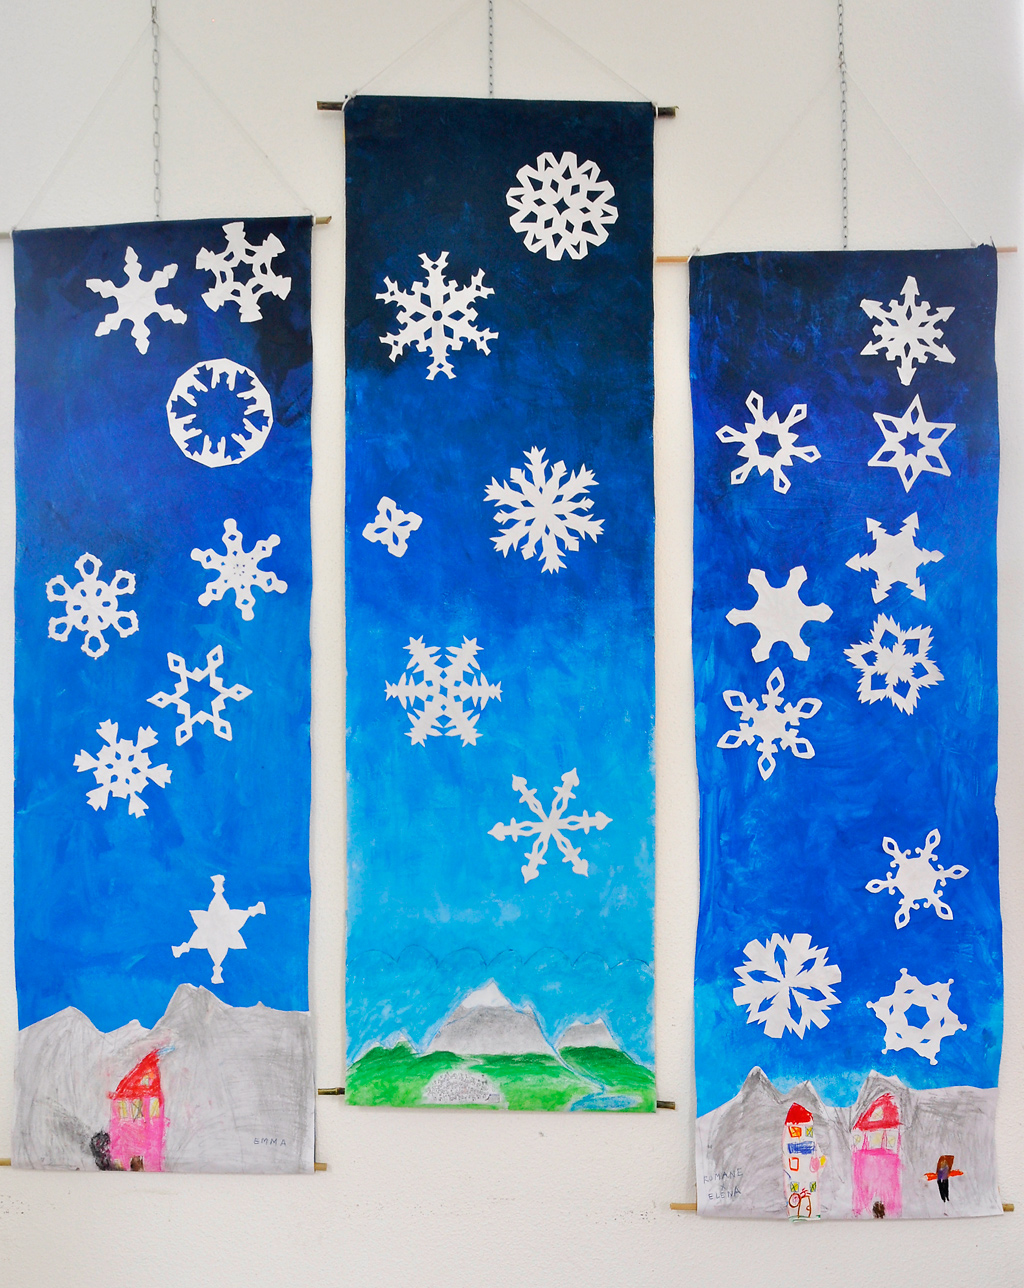 atelier_nightscapes_snowflakes